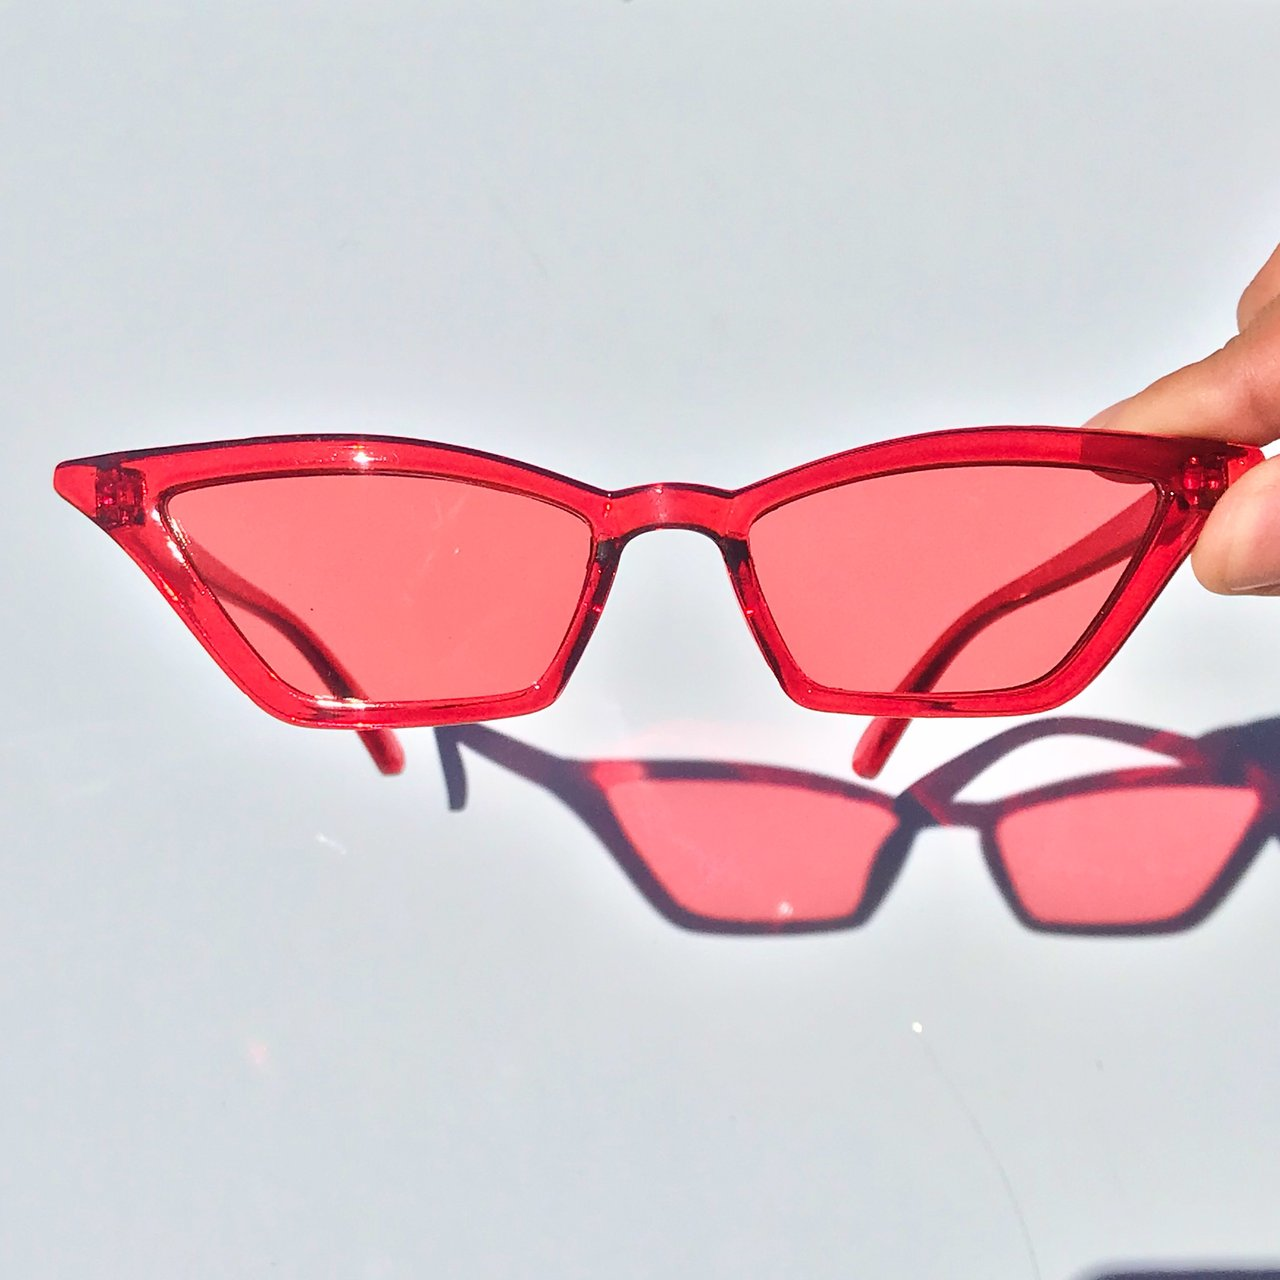 37fea866f1 brand new cat eye sunglasses in red plus cheap shipping - Depop